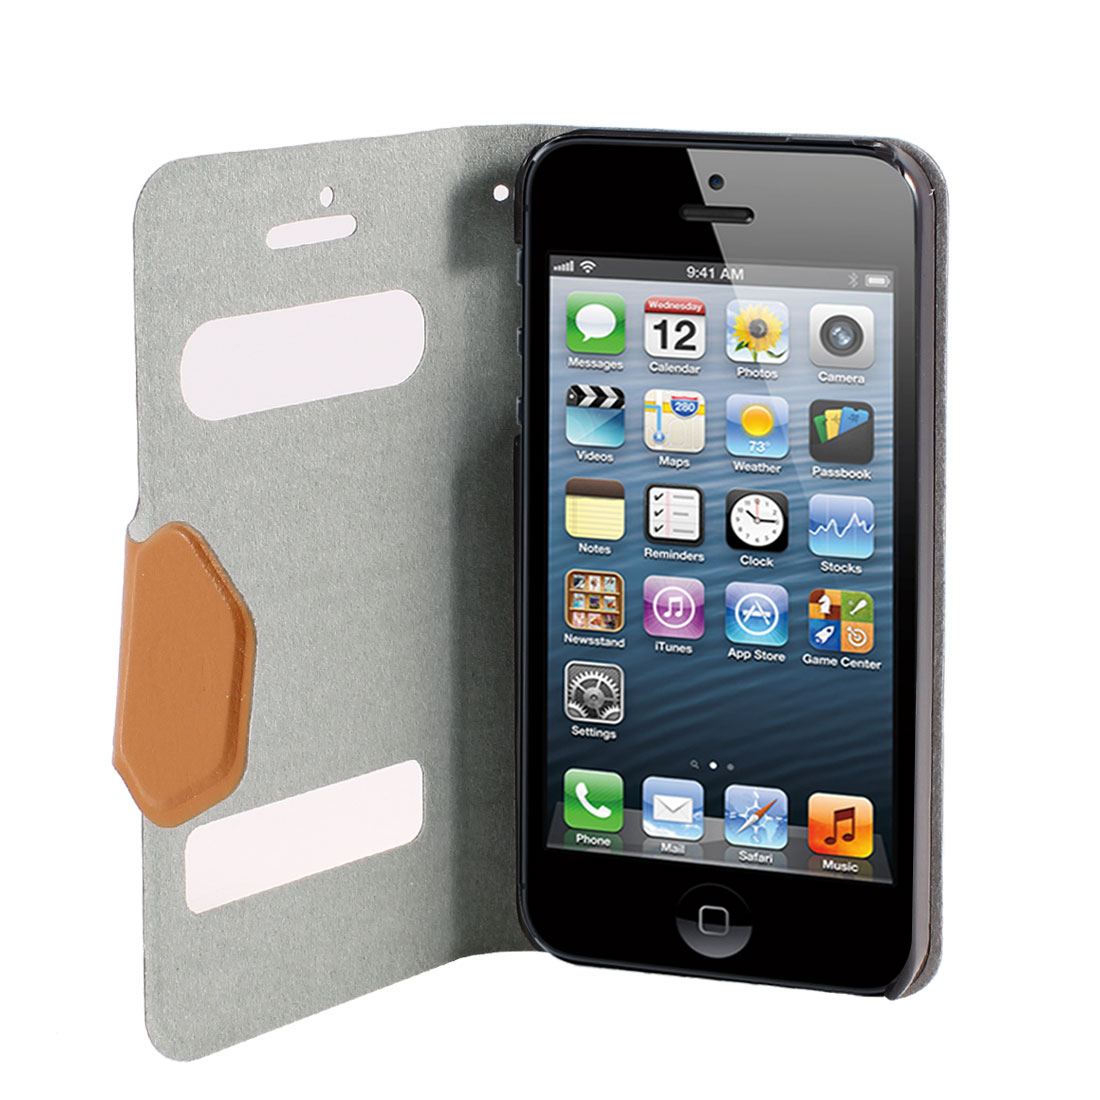 Brown PU Leather Magnetic Flip Hard Case Cover for iPhone 5 5G 5th 5 Gen